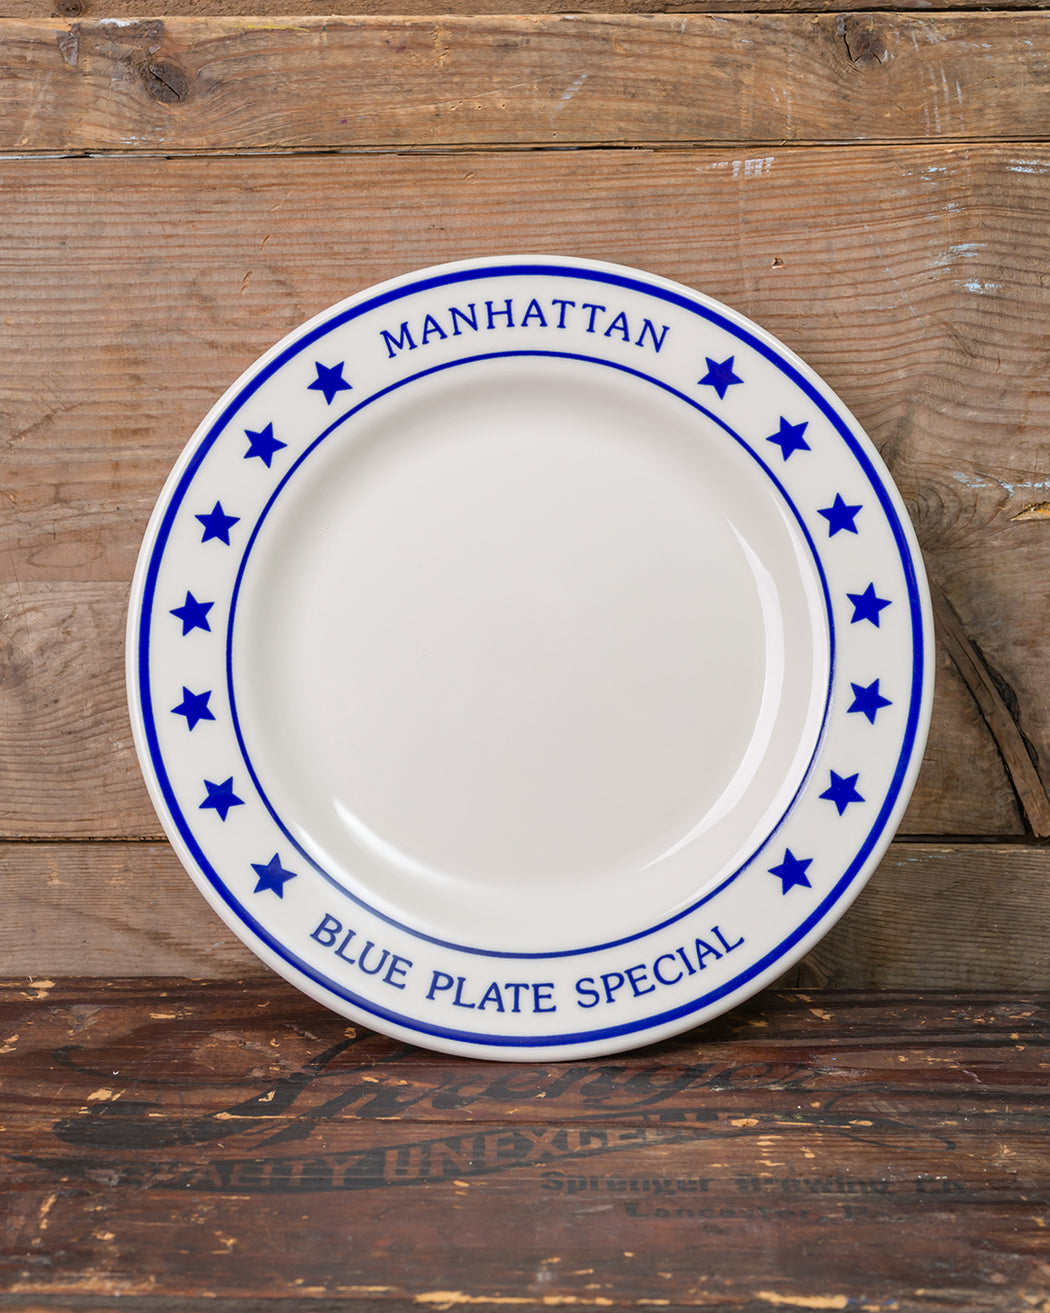 Manhattan Blue Plate Special Dinner Plate - Fishs Eddy ... : dinner plate images - pezcame.com